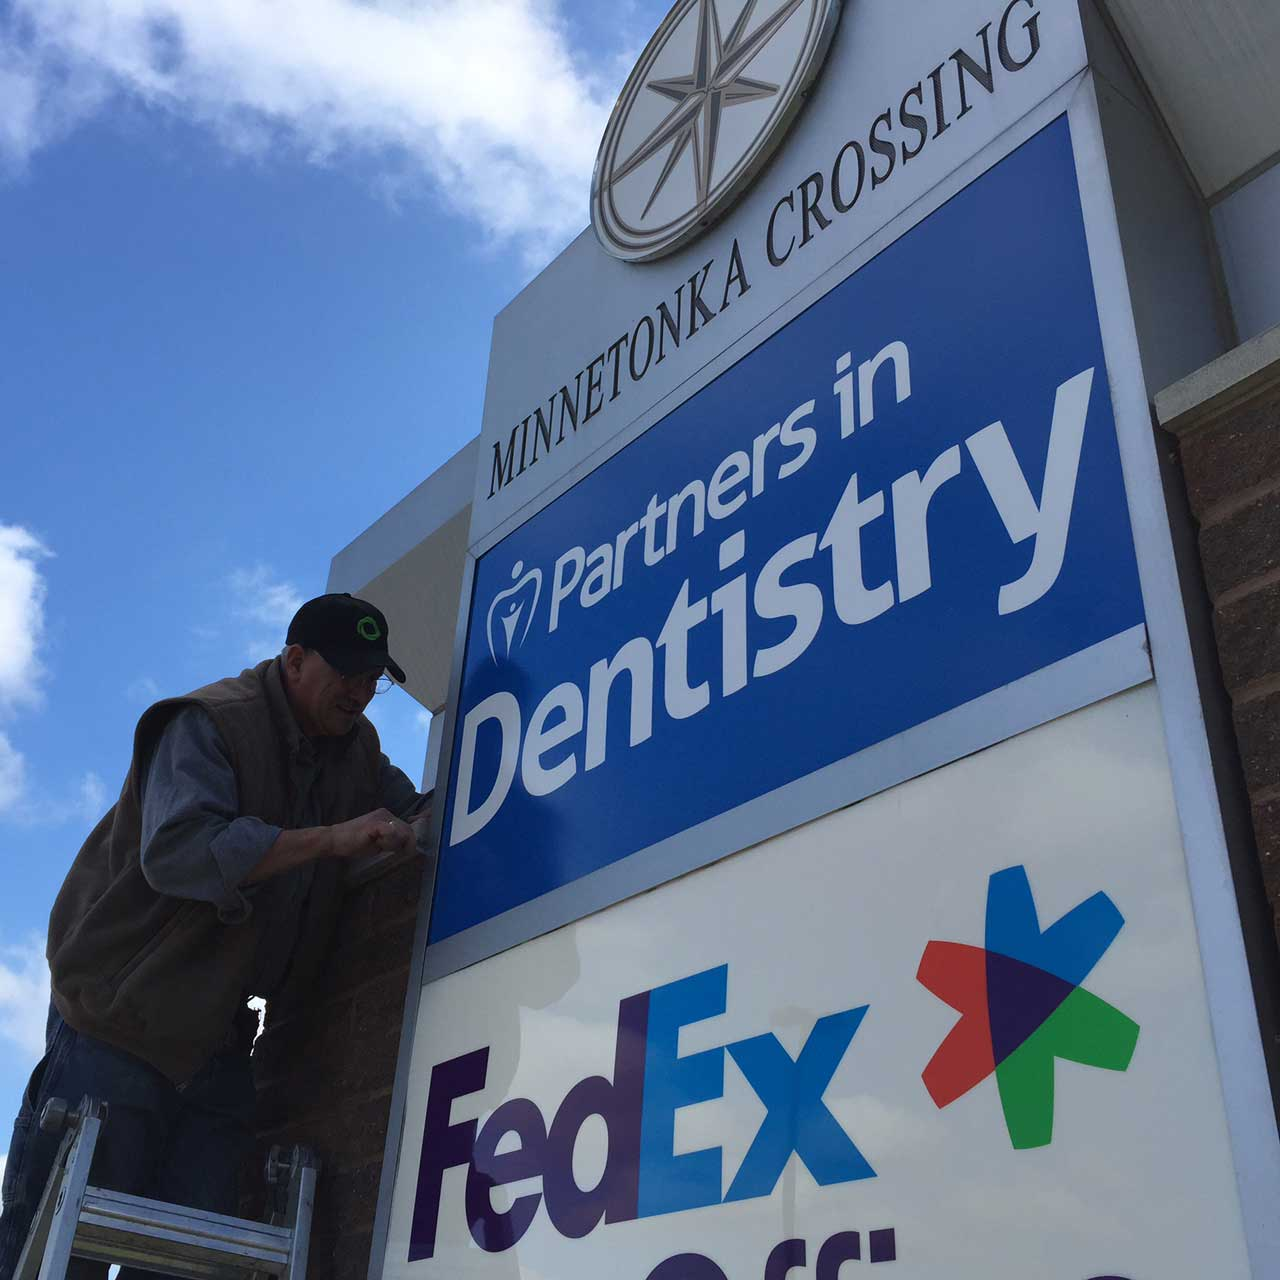 custom pylon sign partners in dentistry